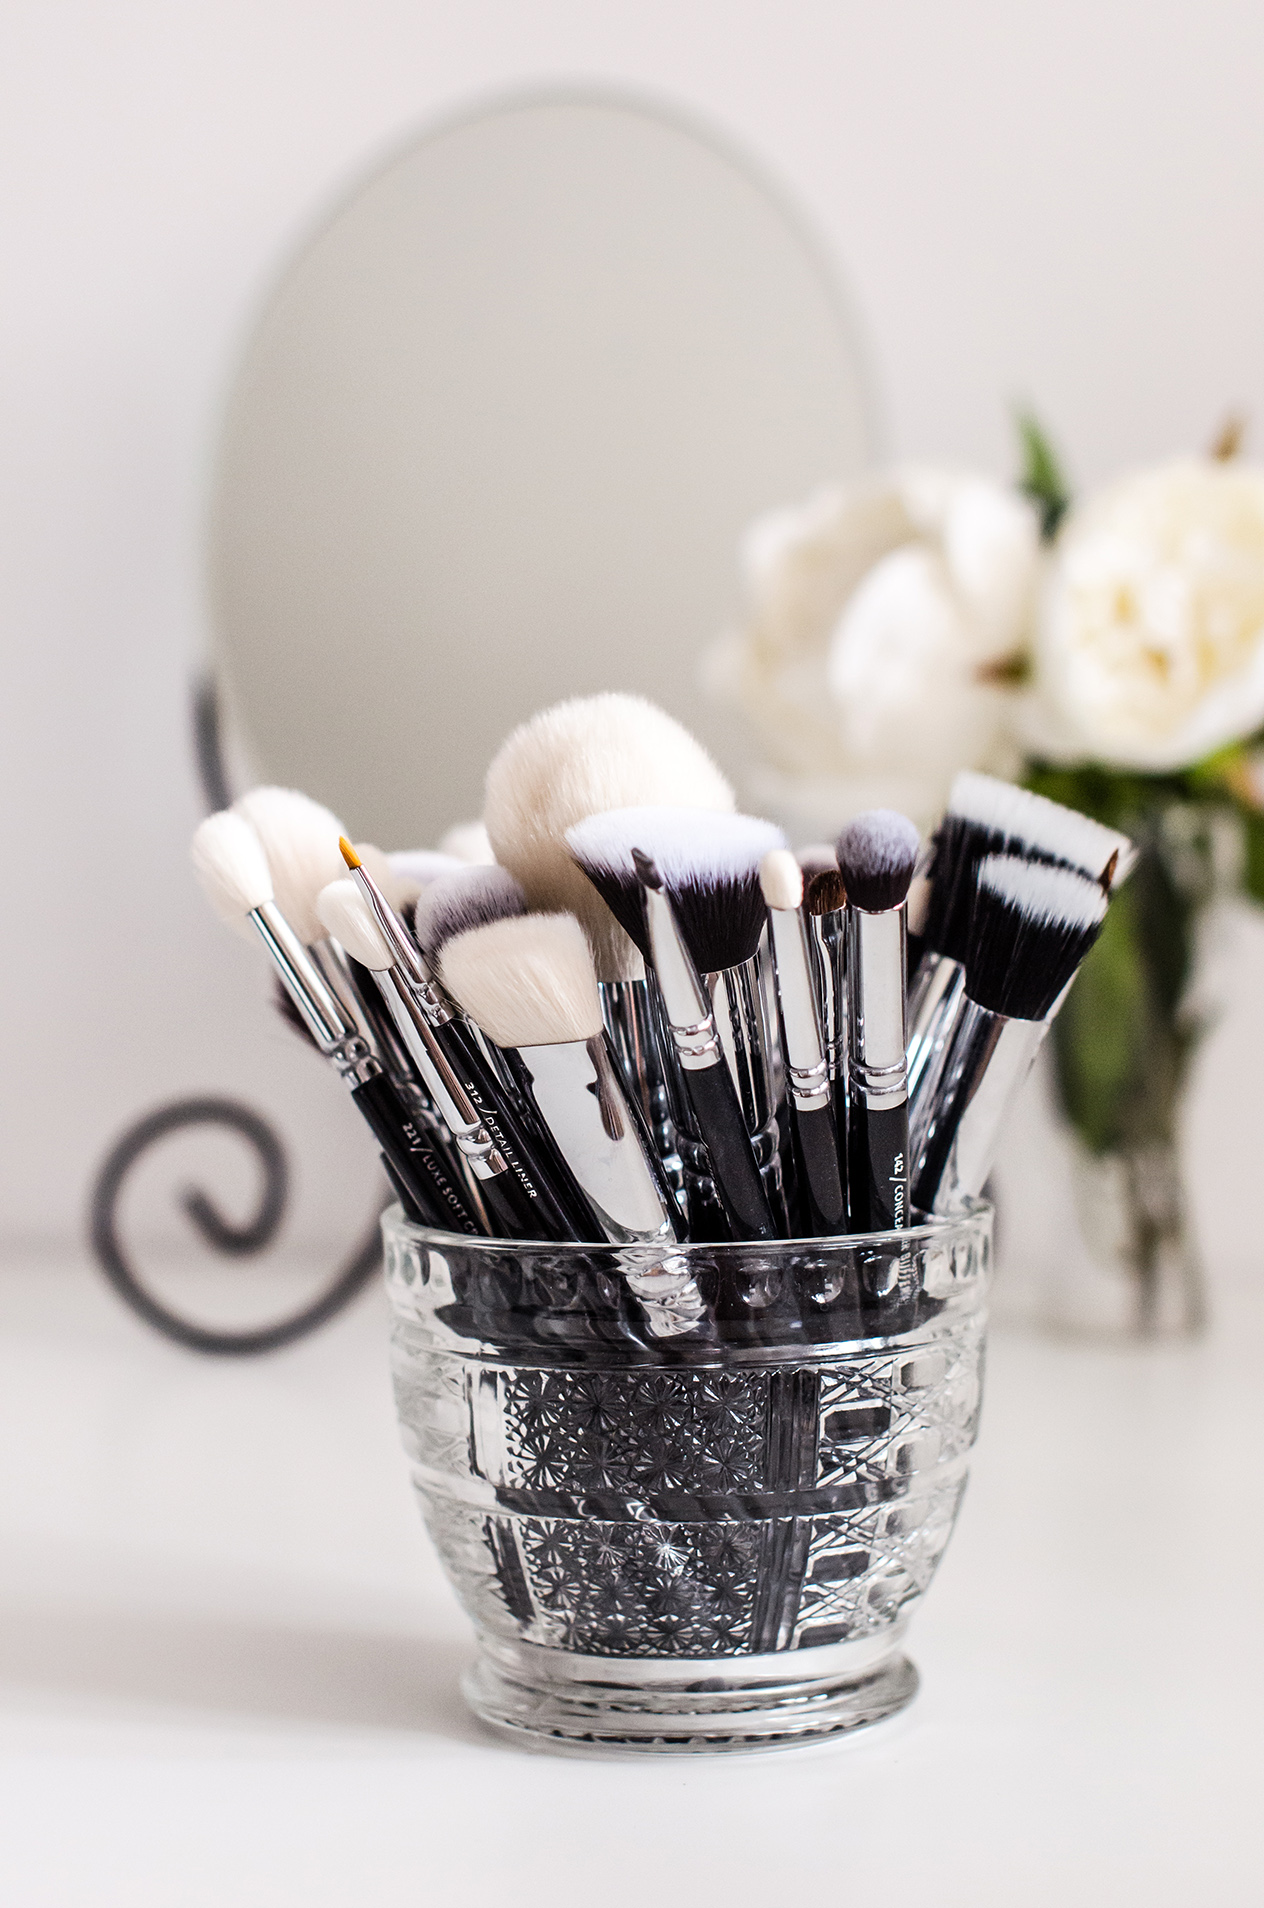 Zoeva_makeup_artist_brush_set_review_pink_wish_2c